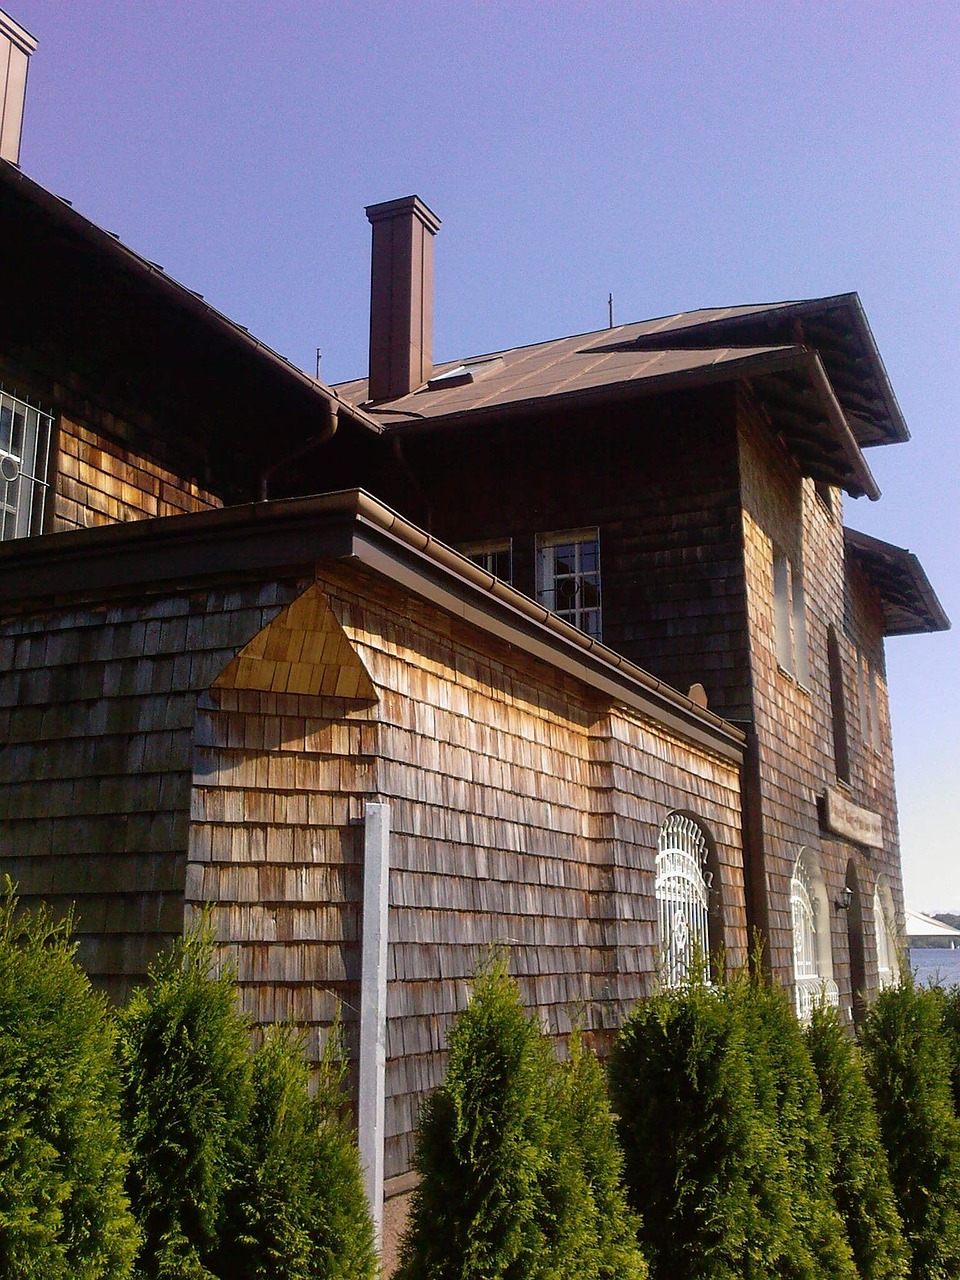 house wood trim chalet free photo